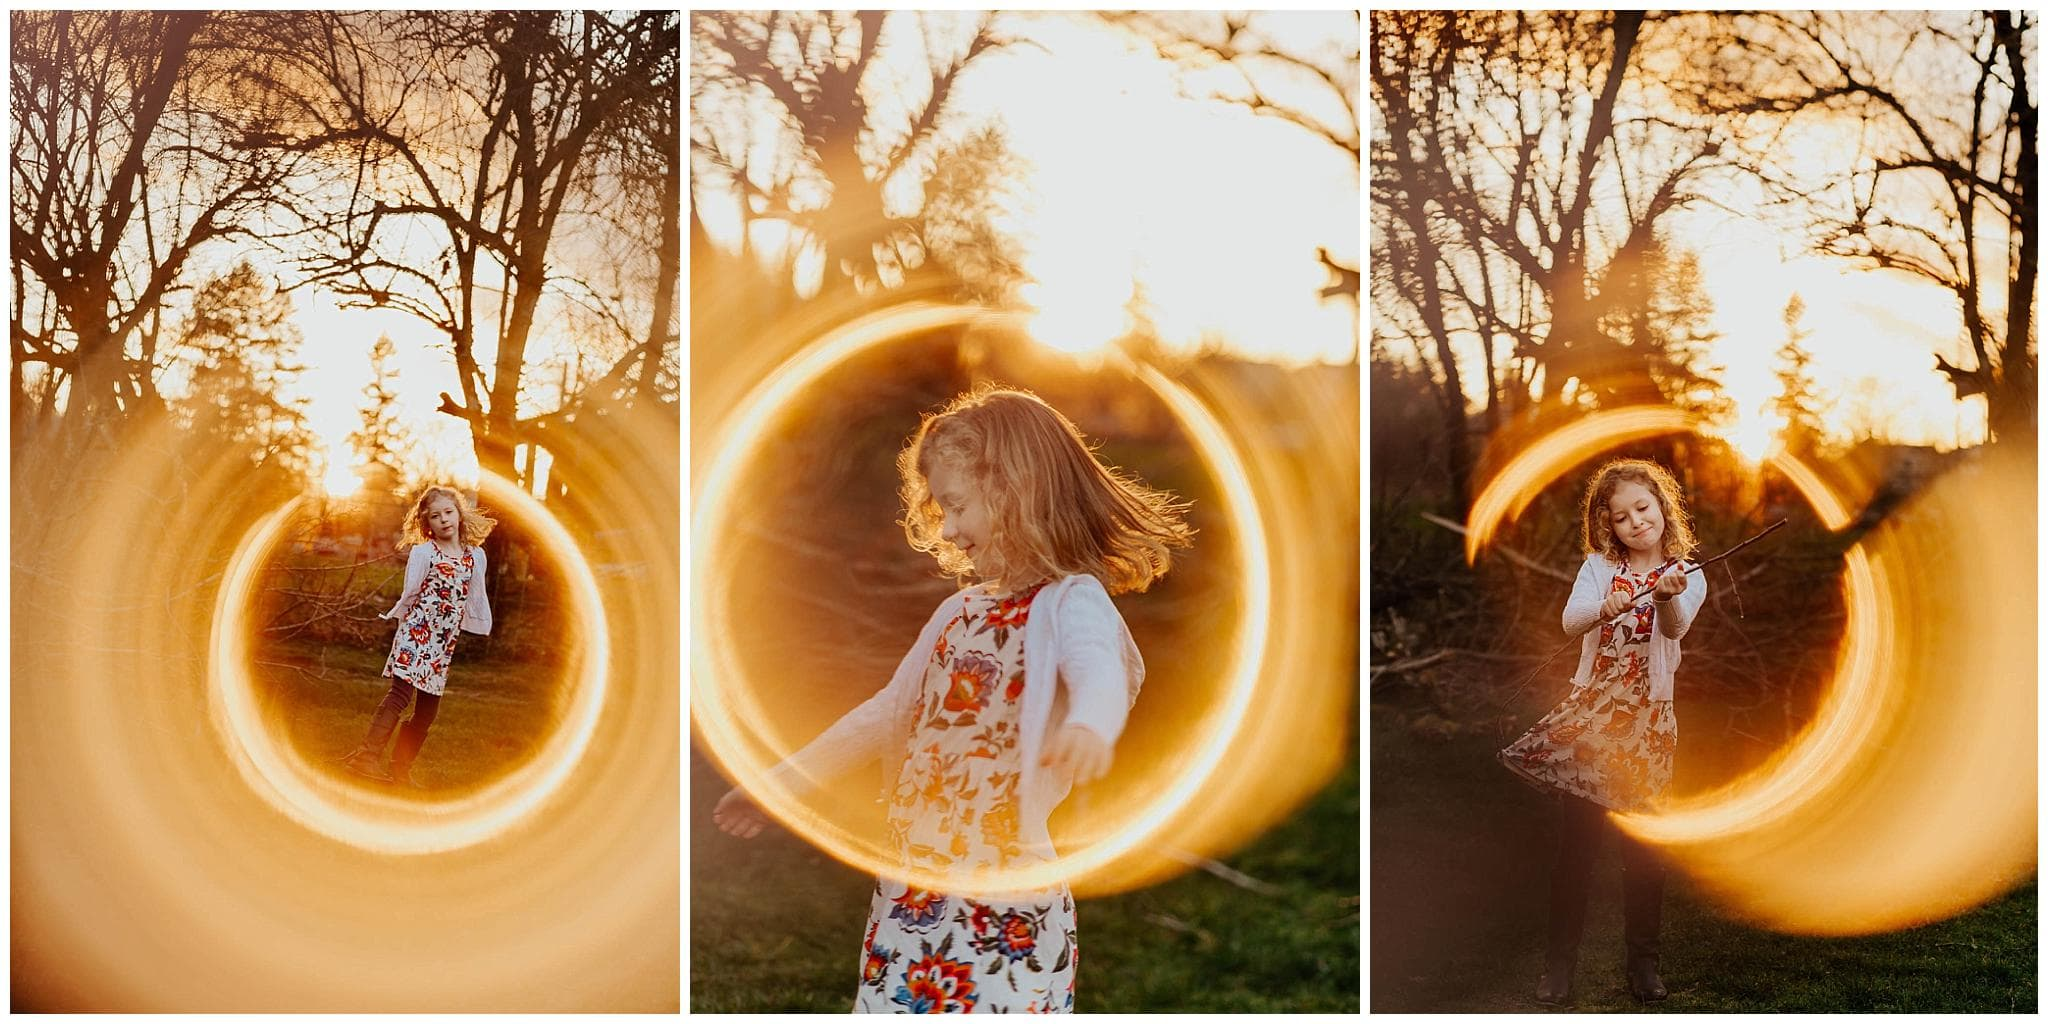 little girl dancing in the sunset light with ring of fire around her using photography technique with copper pipe